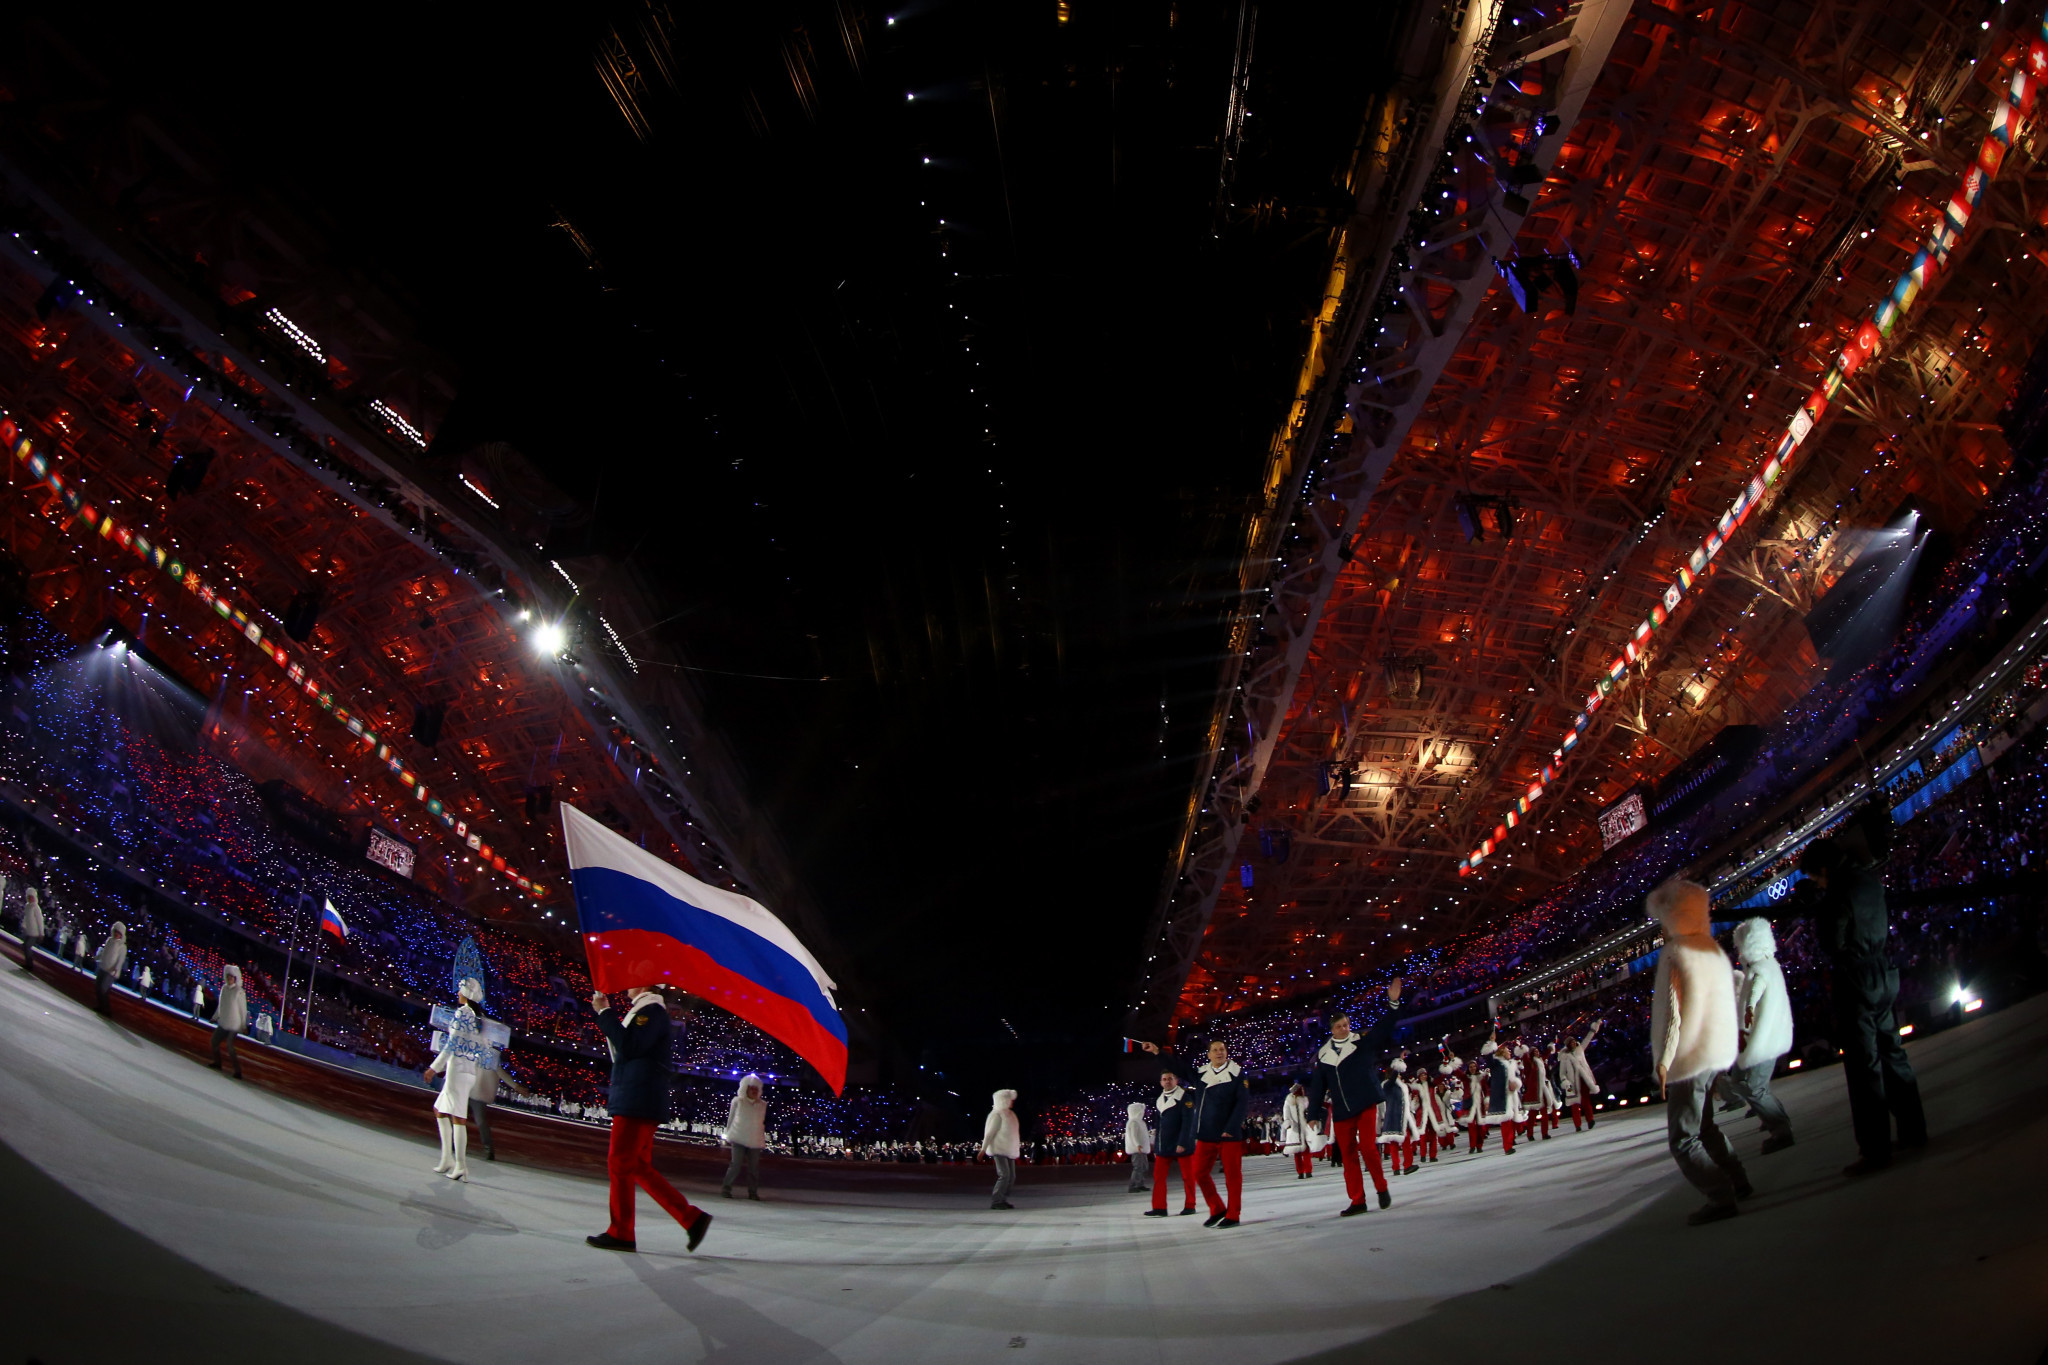 CAS adjourn hearing into 32 Russian athletes hoping to appear at Pyeongchang 2018